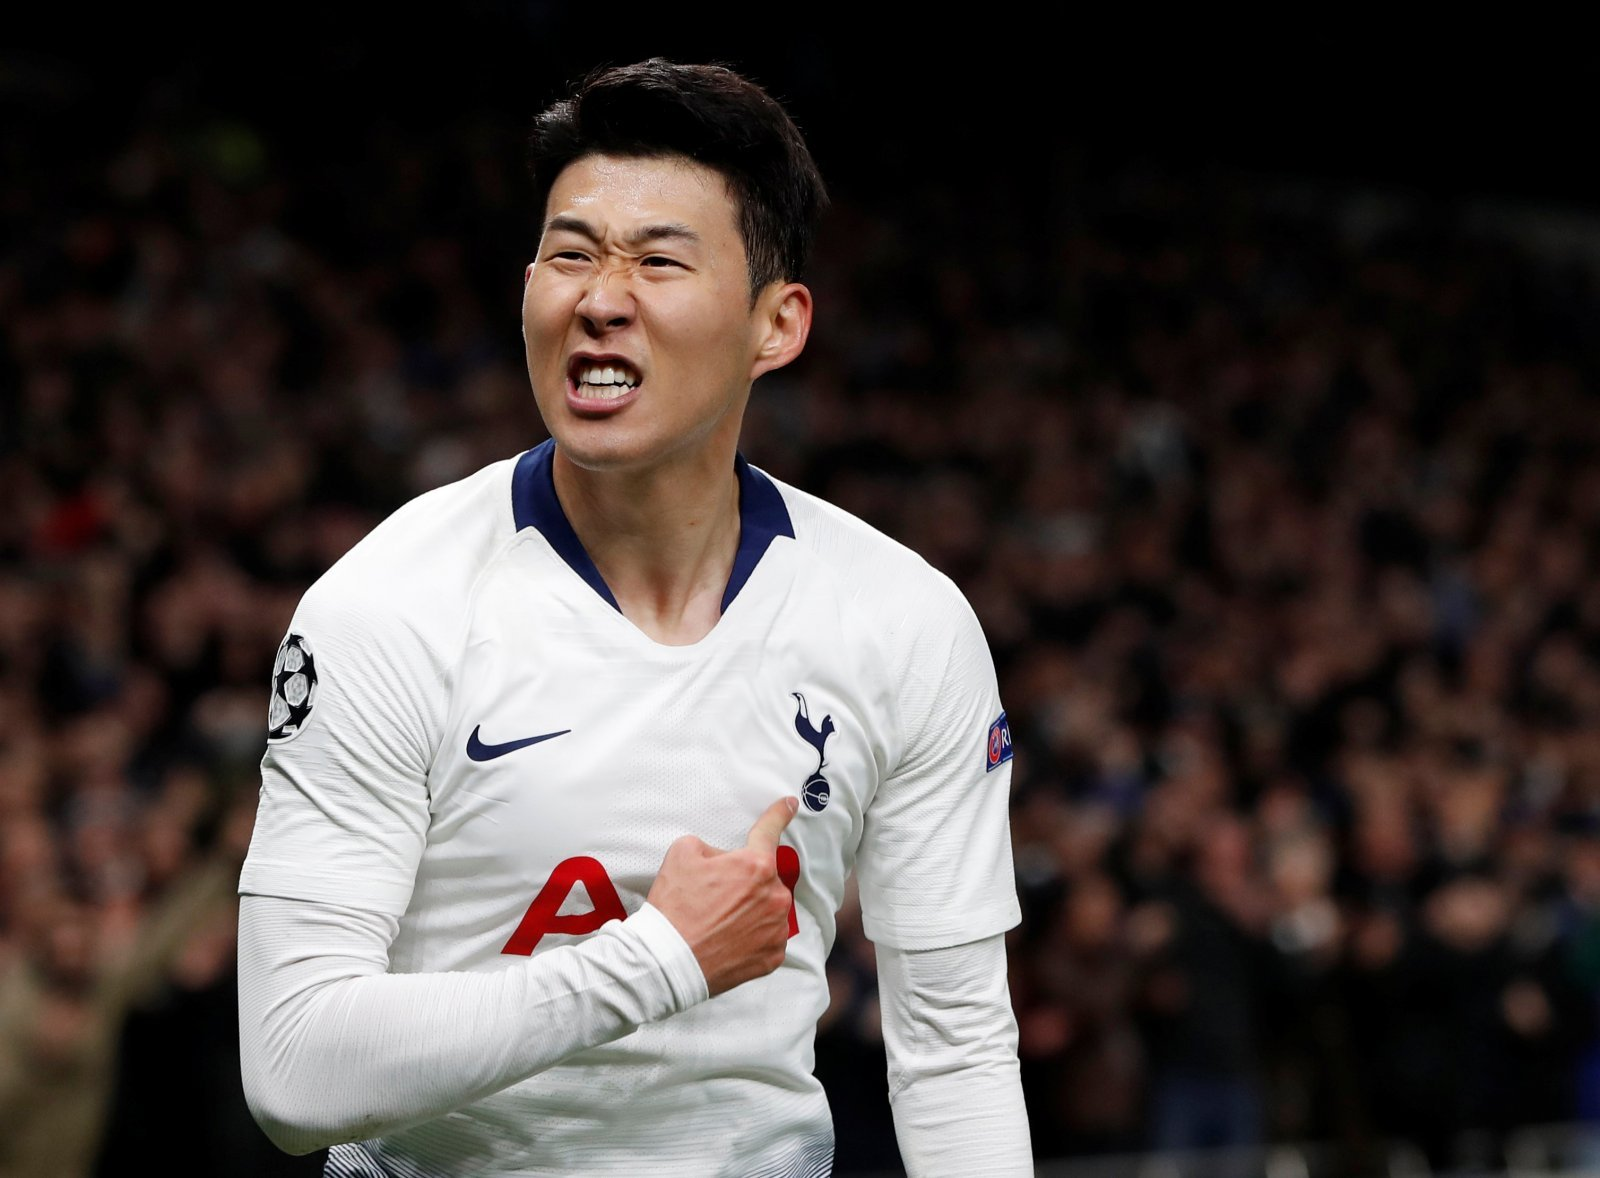 Tottenham fans take to Twitter to lament decision to rest Heung-Min Son